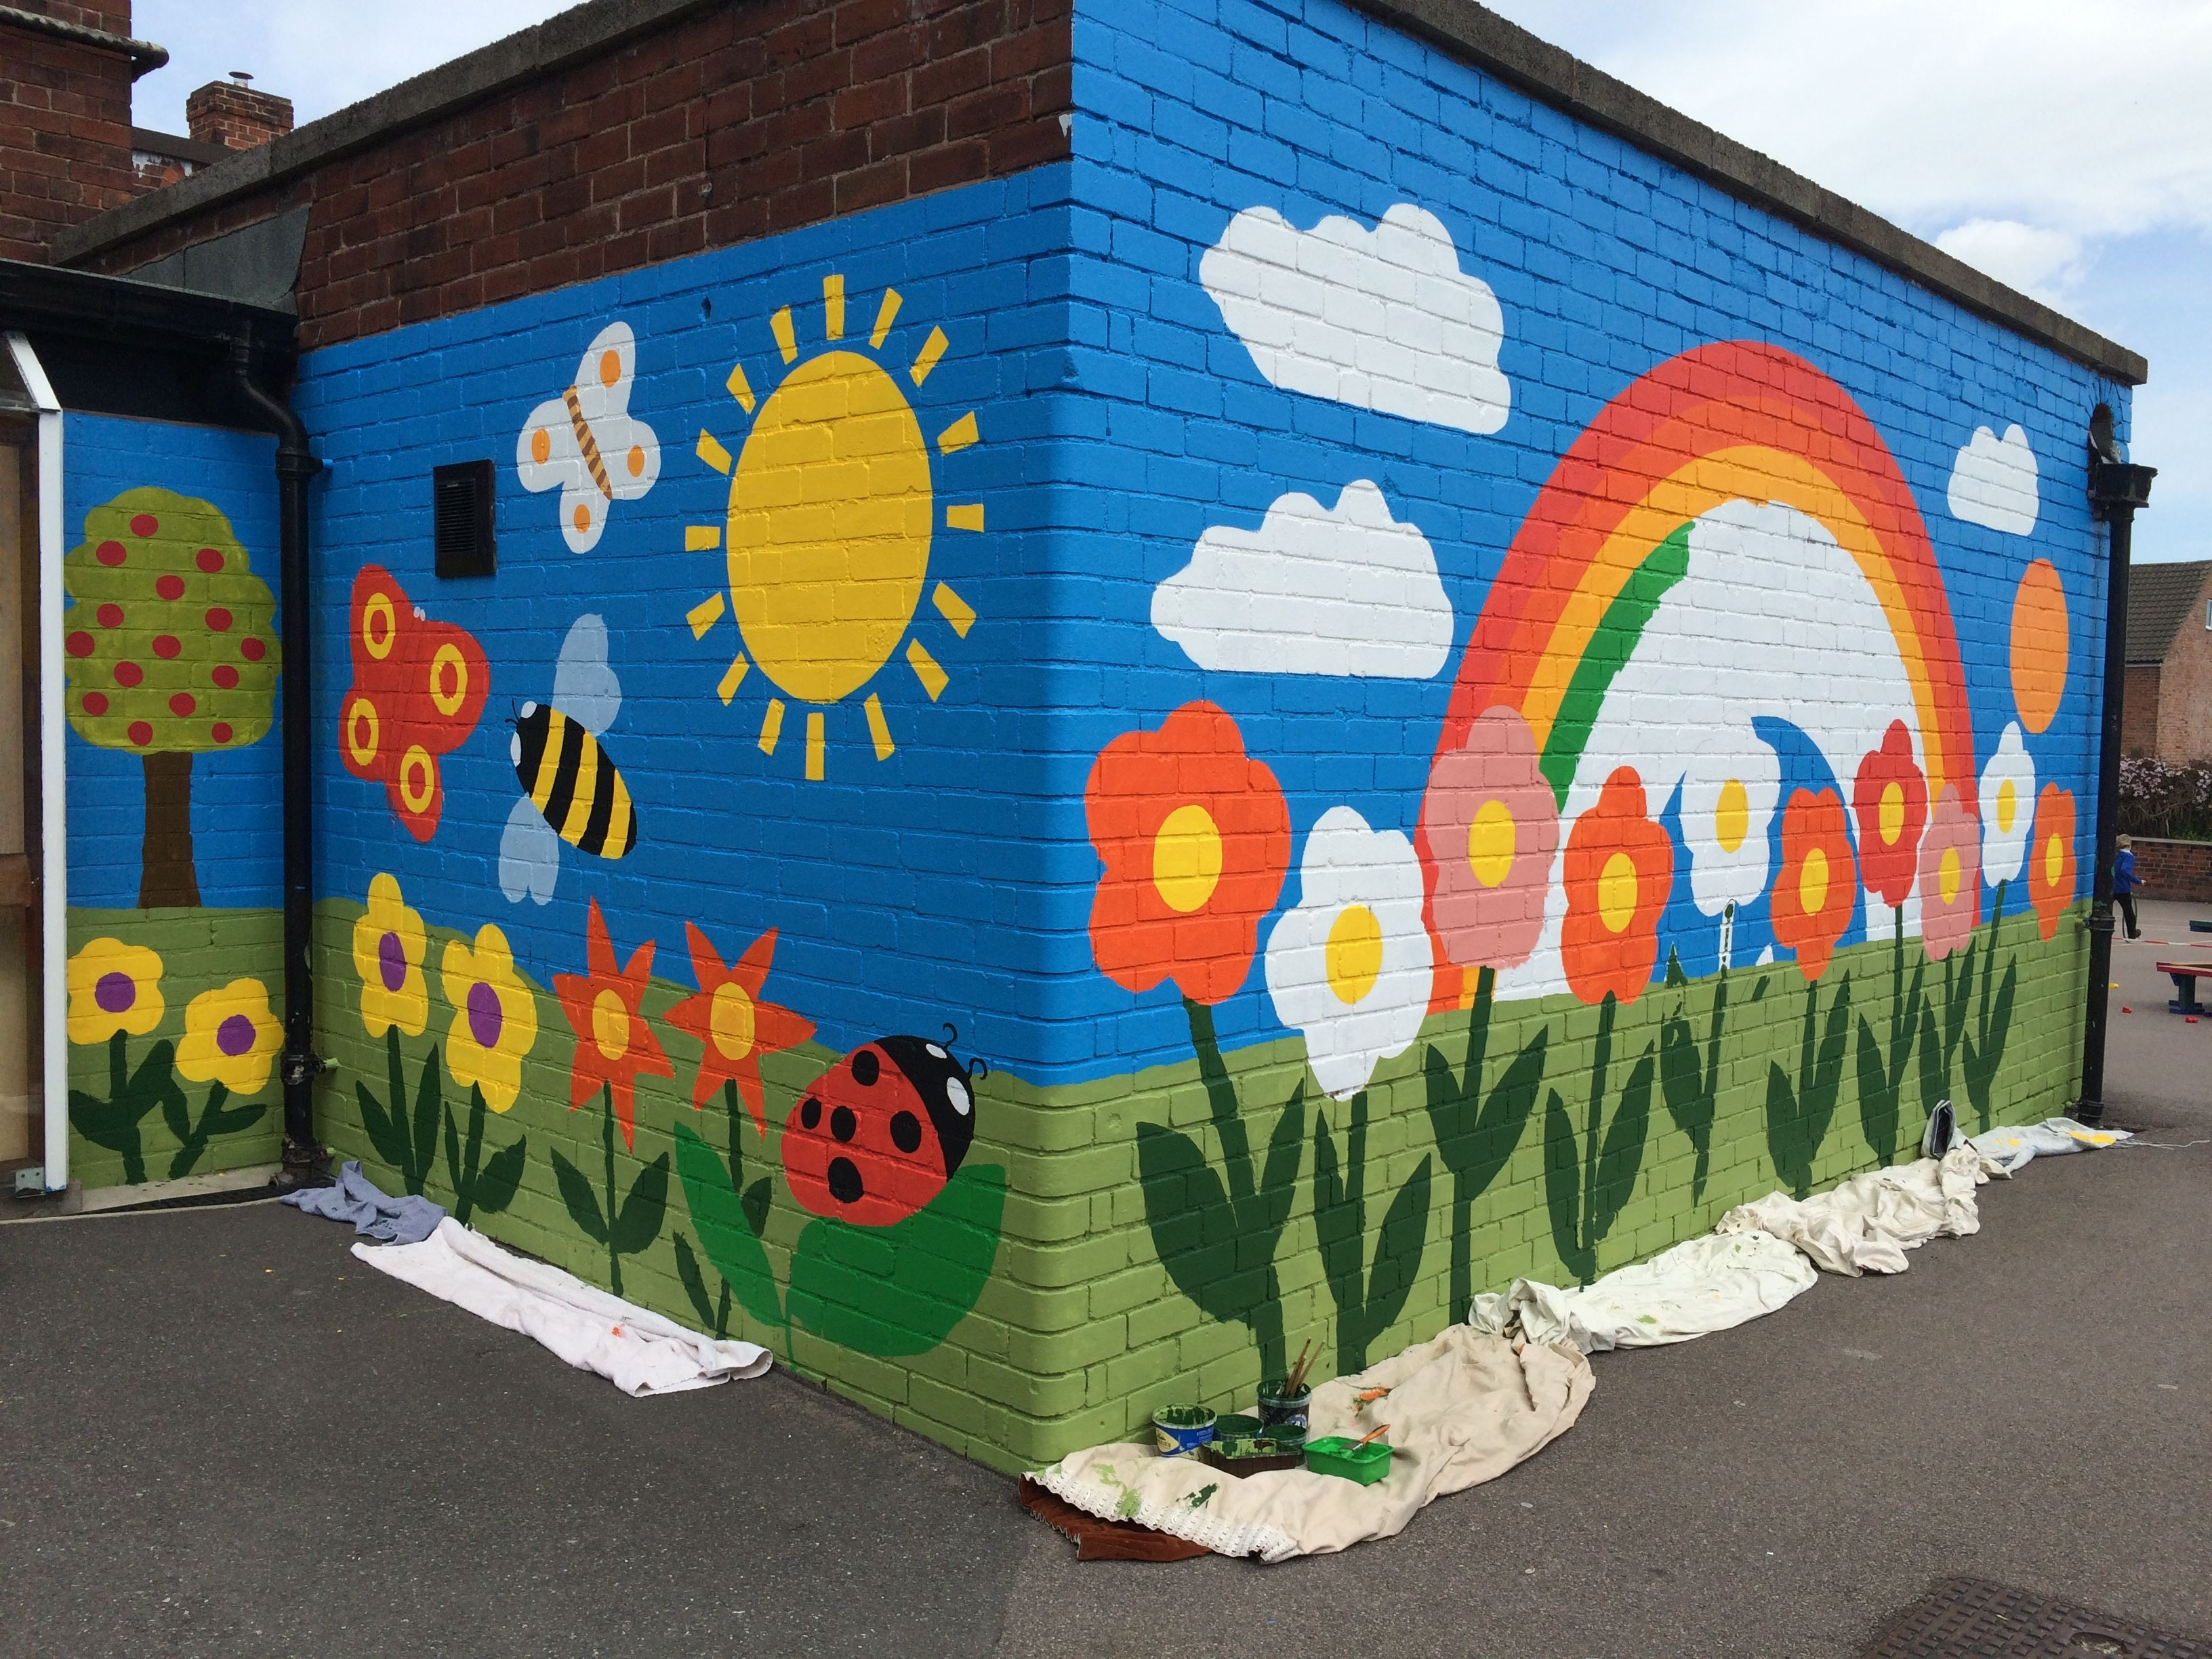 New whittington primary school mural junction arts for Elementary school mural ideas